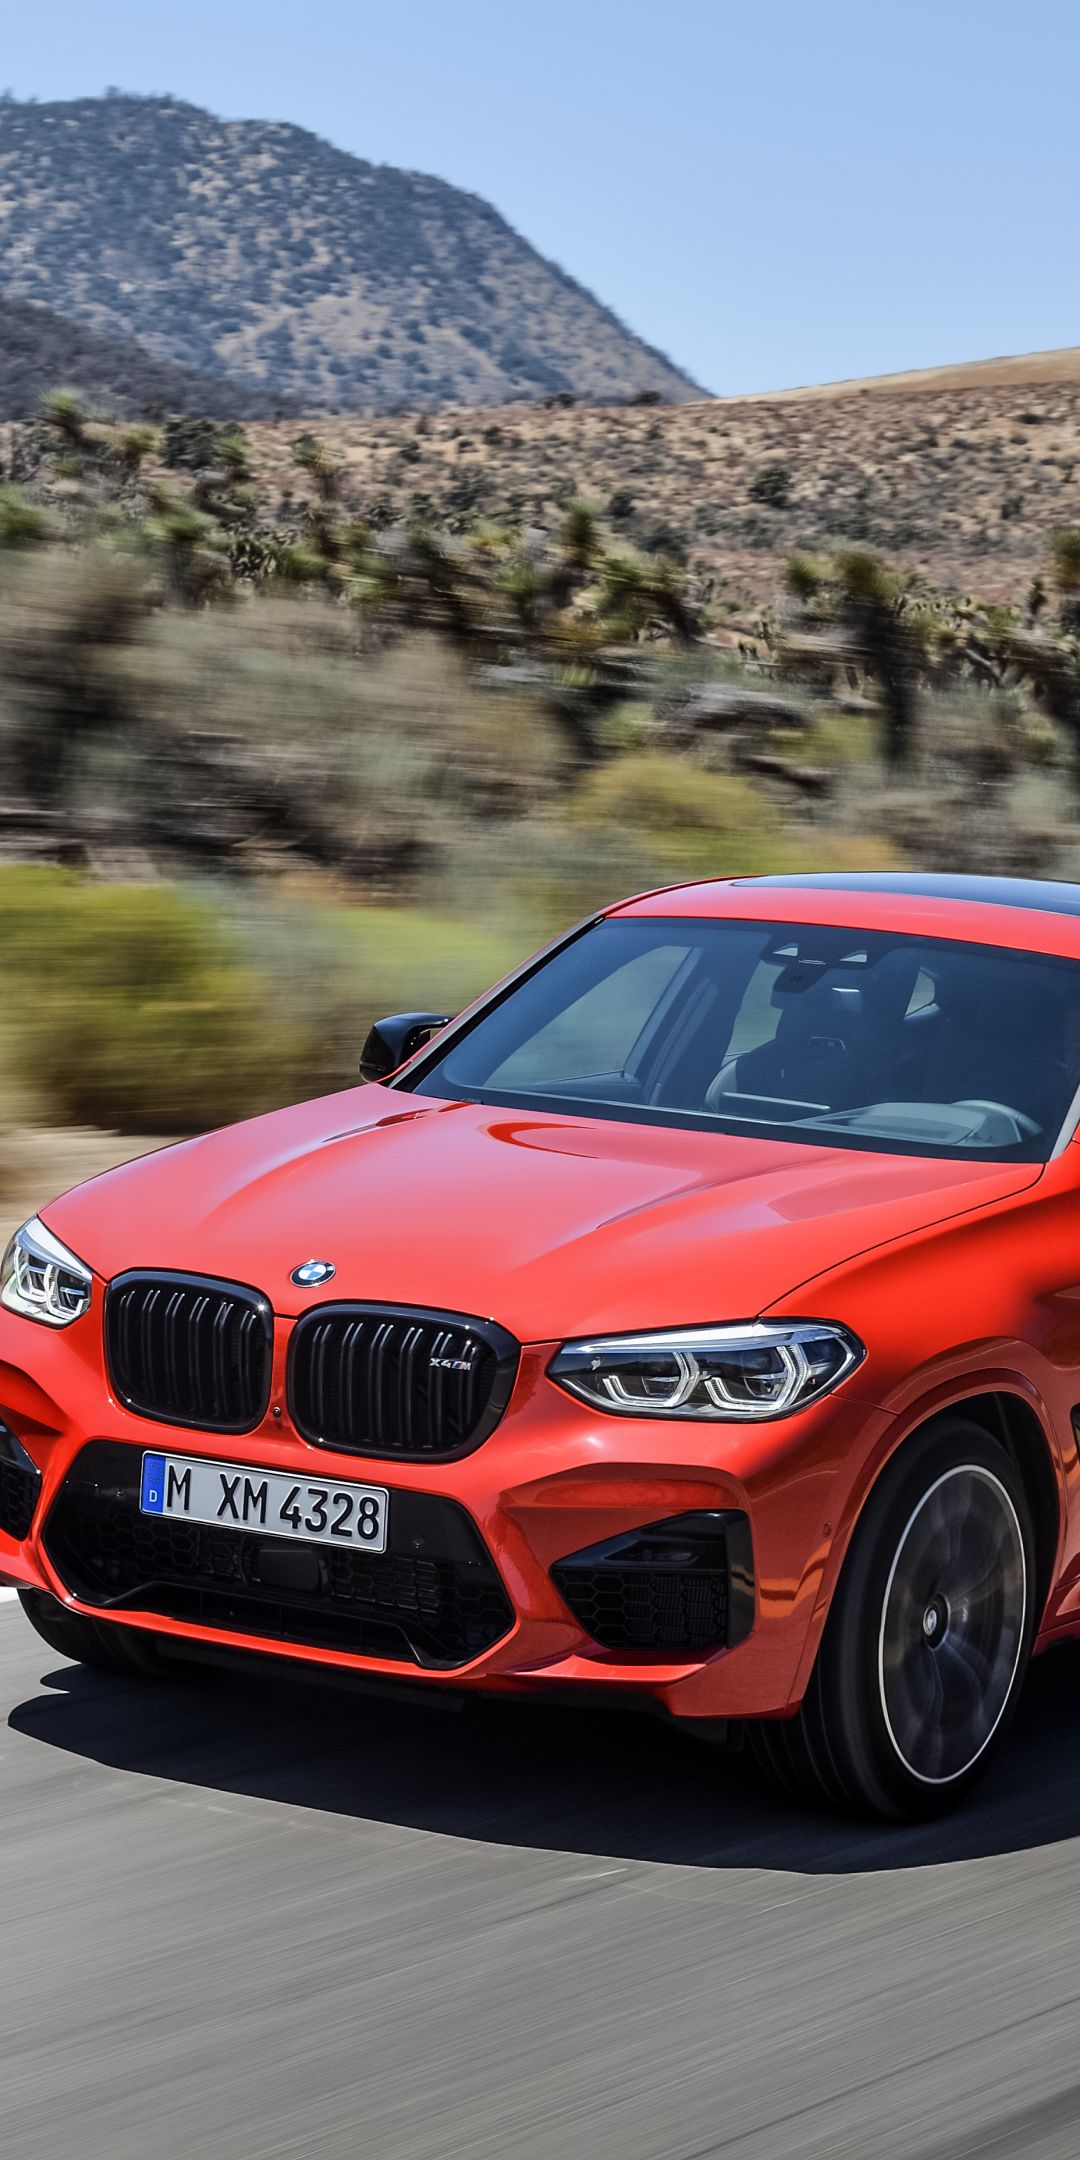 On Road Red Bmw X4 1080x2160 Wallpaper Bmw X4 Bmw Car Wallpapers